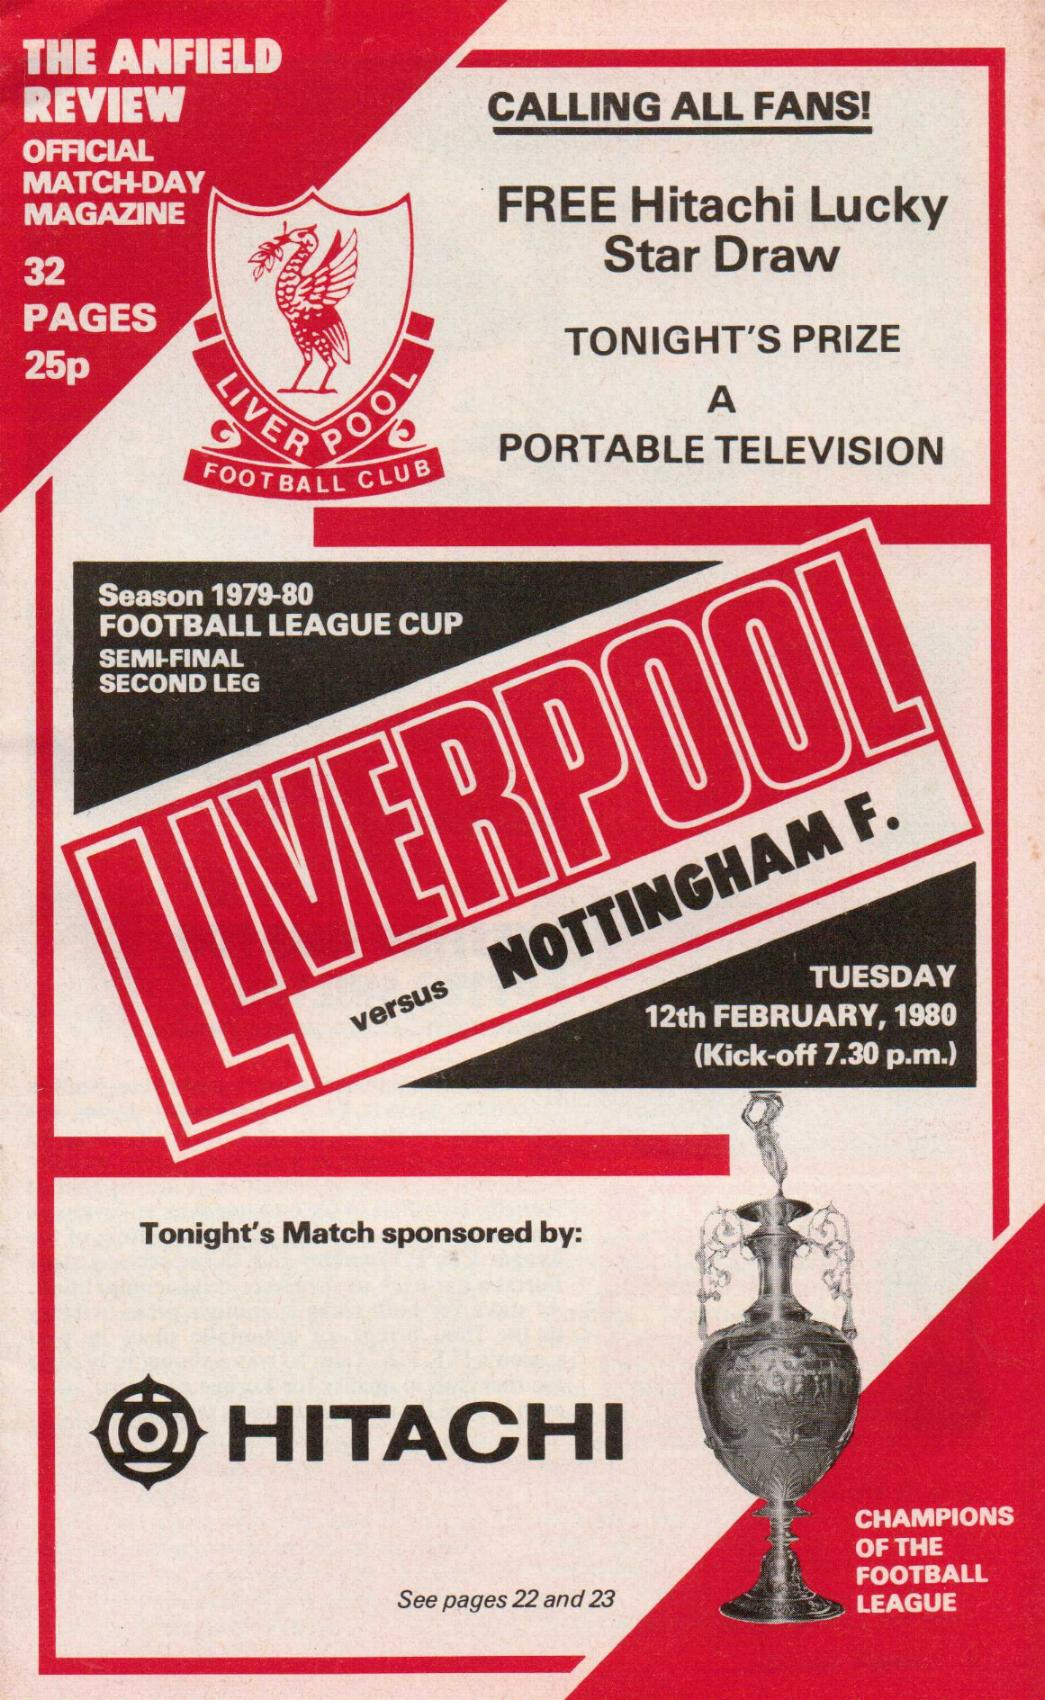 1980 LEAGUE CUP SEMI-FINAL - LIVERPOOL v NOTTINGHAM FOREST